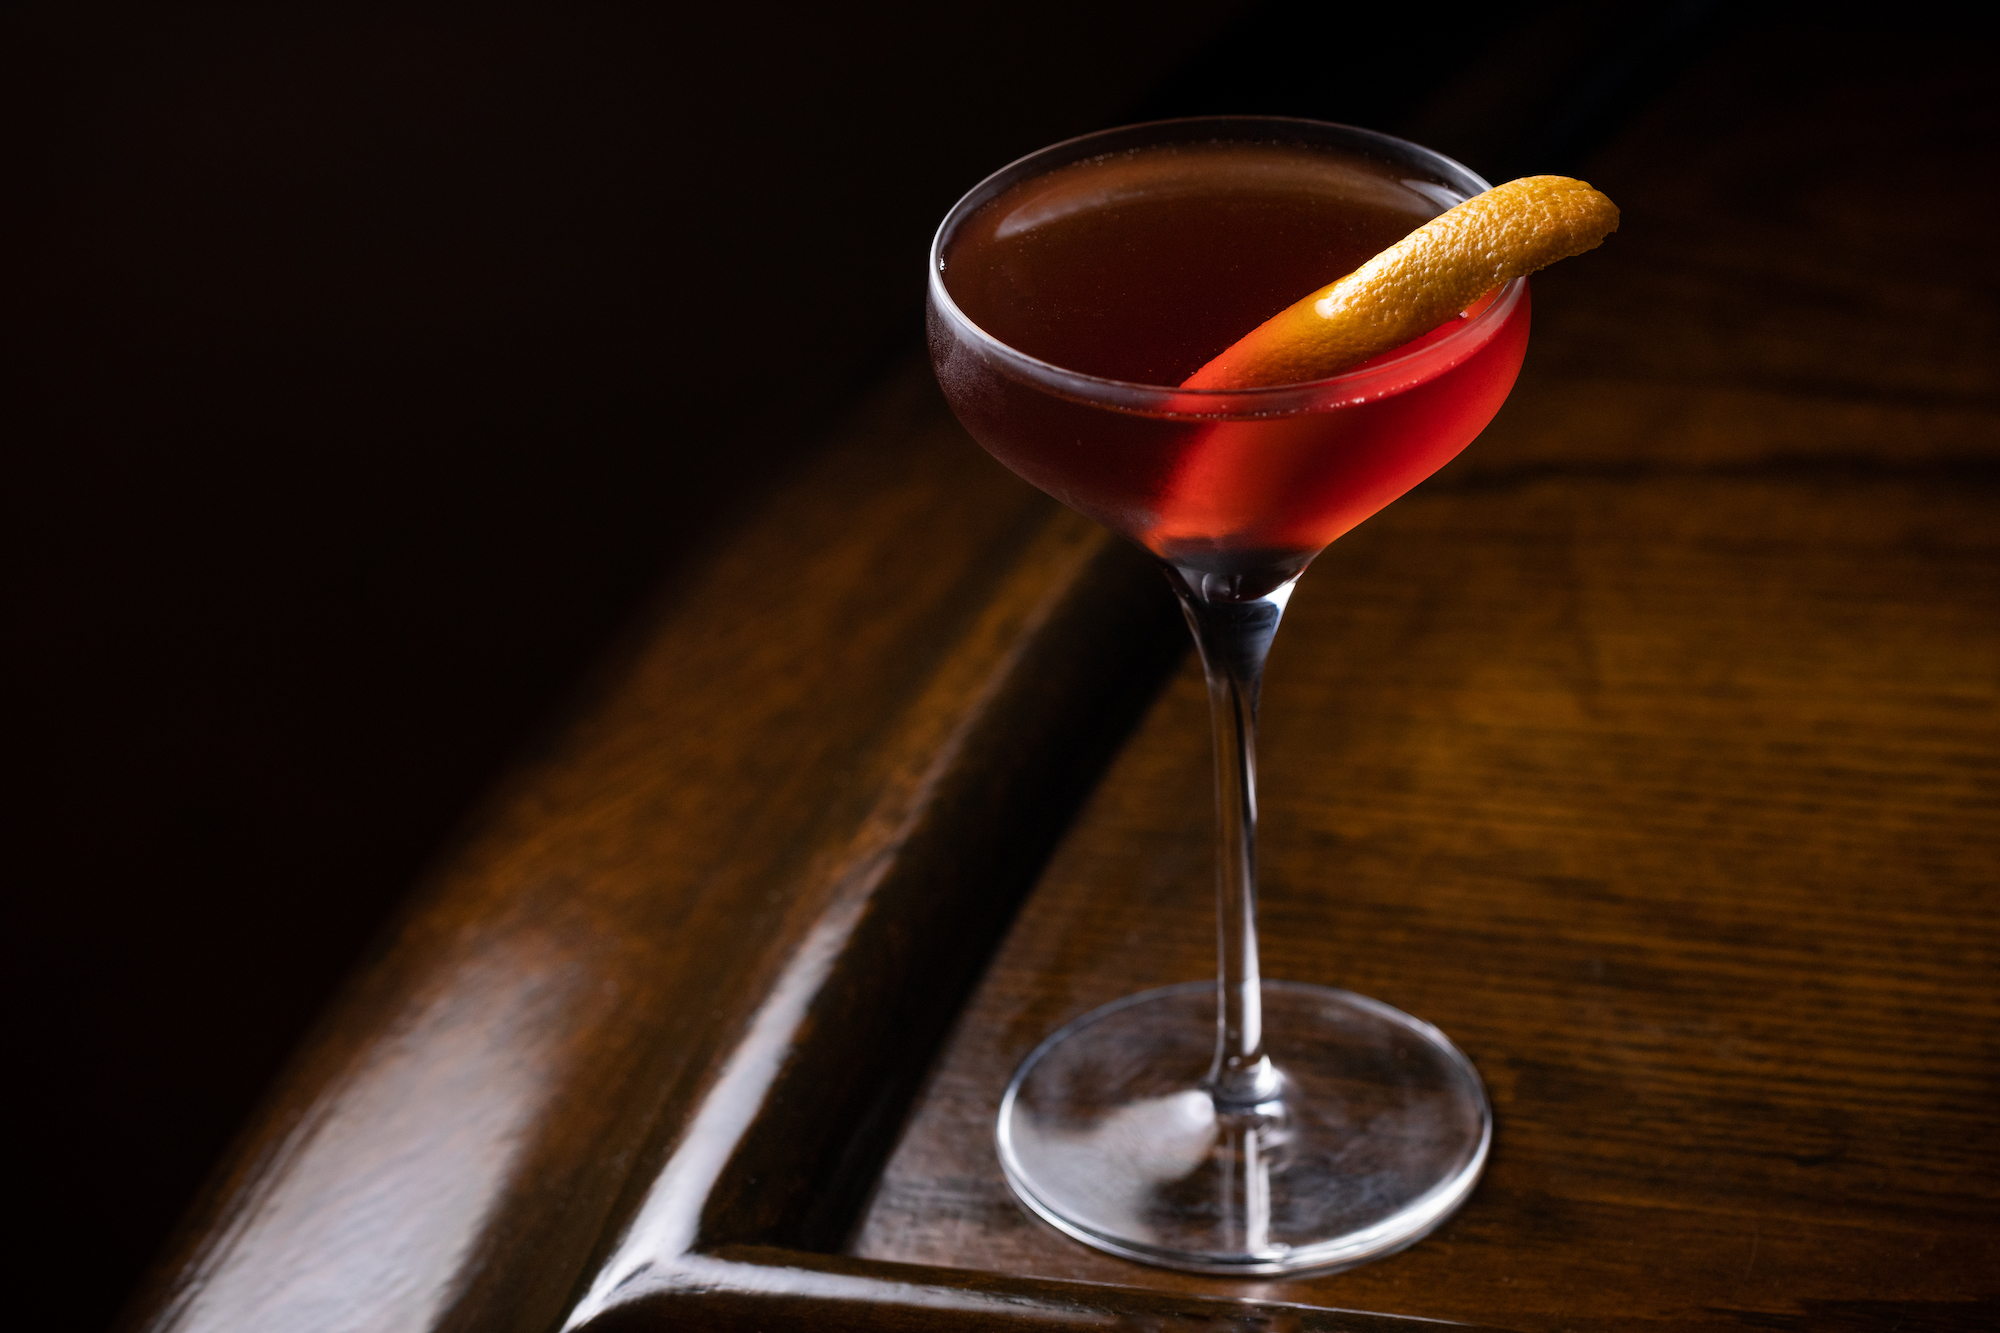 A coupe glass with red liquid and peel of citrus at the corner of a dark bar.